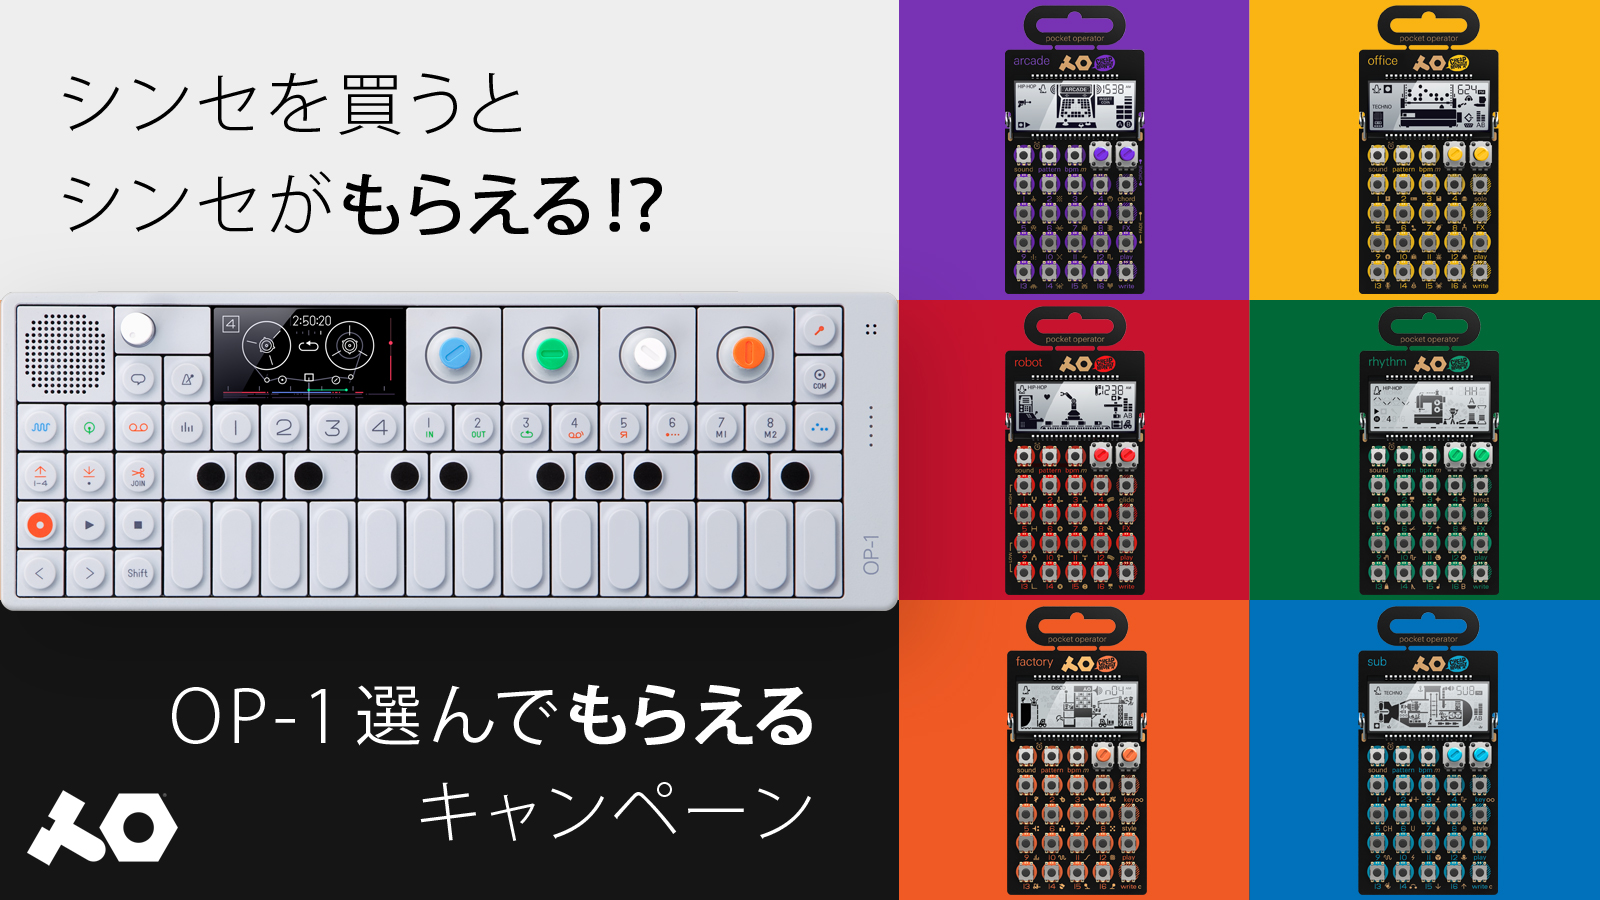 Teenage Engineering OP-1 Pocket Operatorシリーズ Gift!